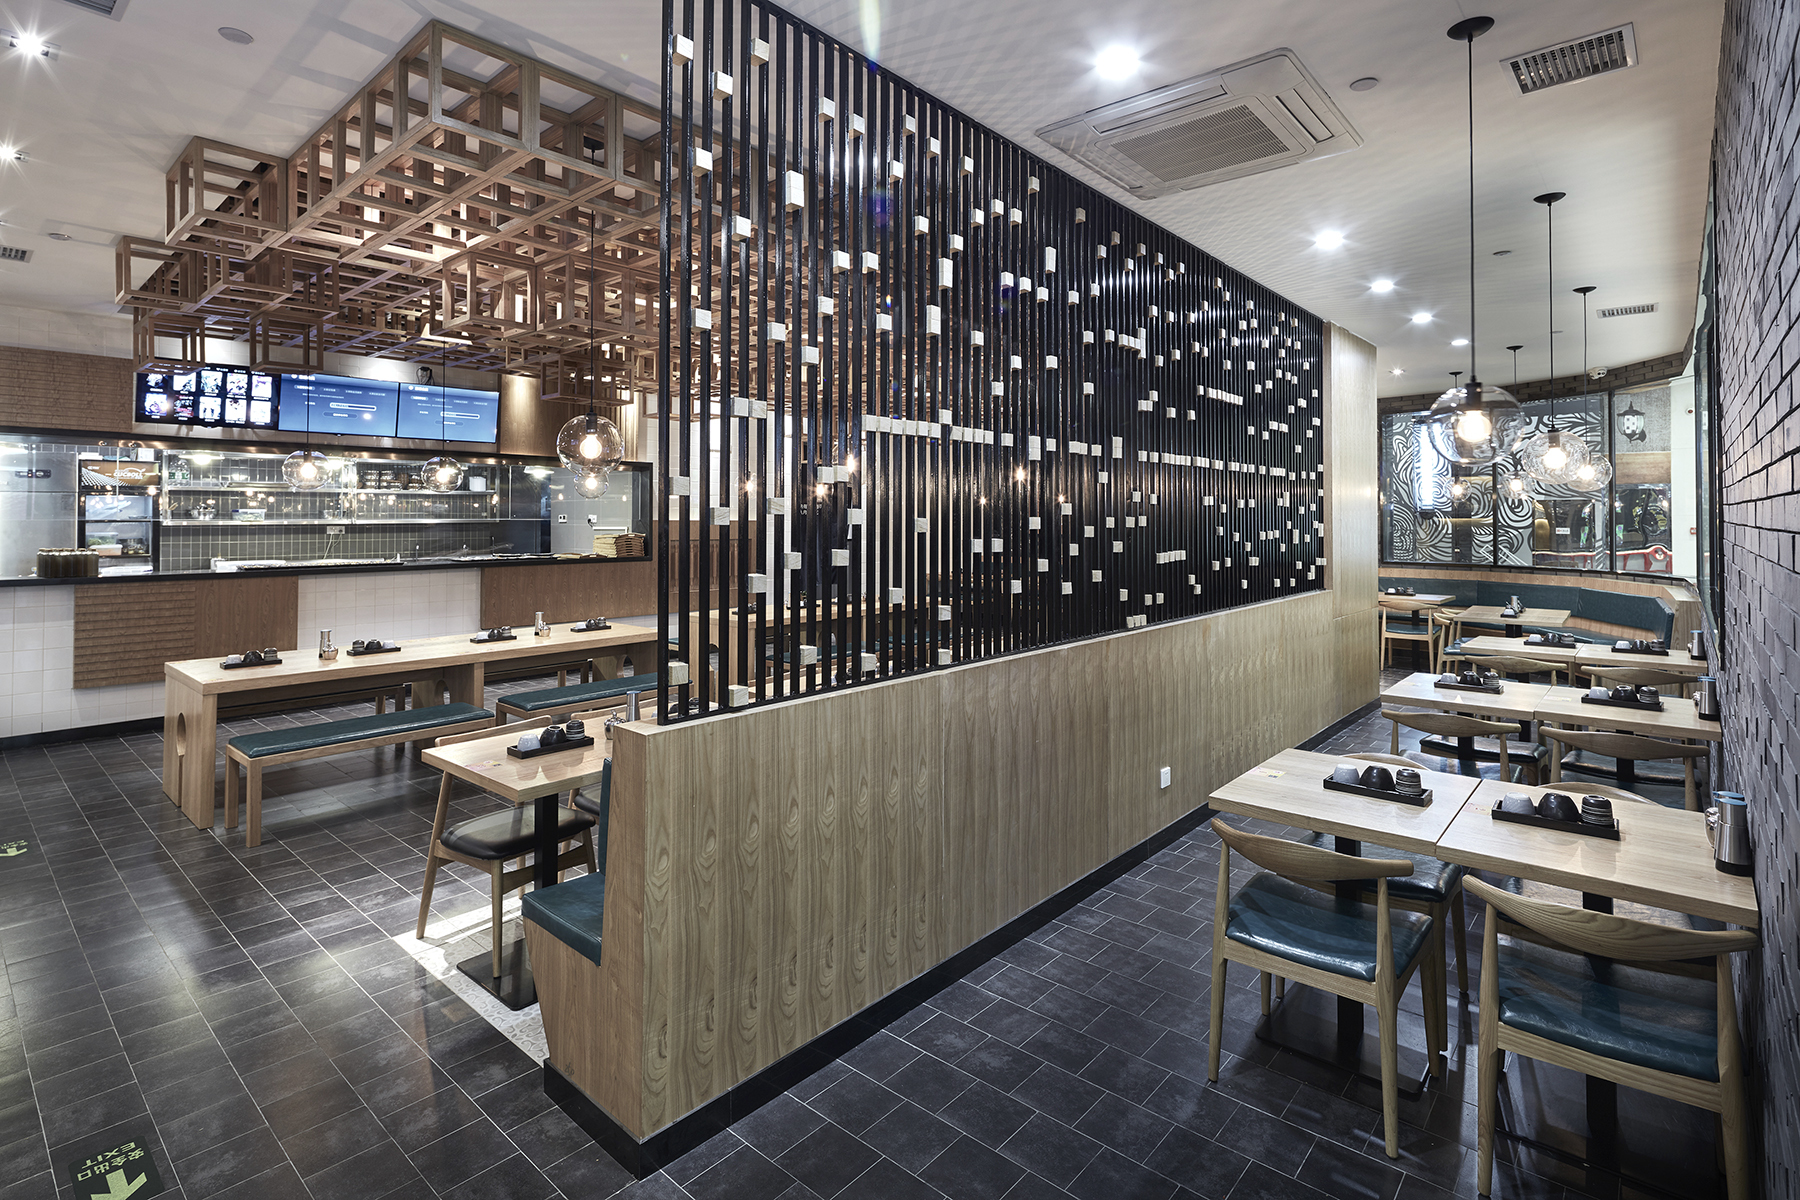 Home Shop Layout And Design Gallery Of 2016 Restaurant Amp Bar Design Awards Announced 27